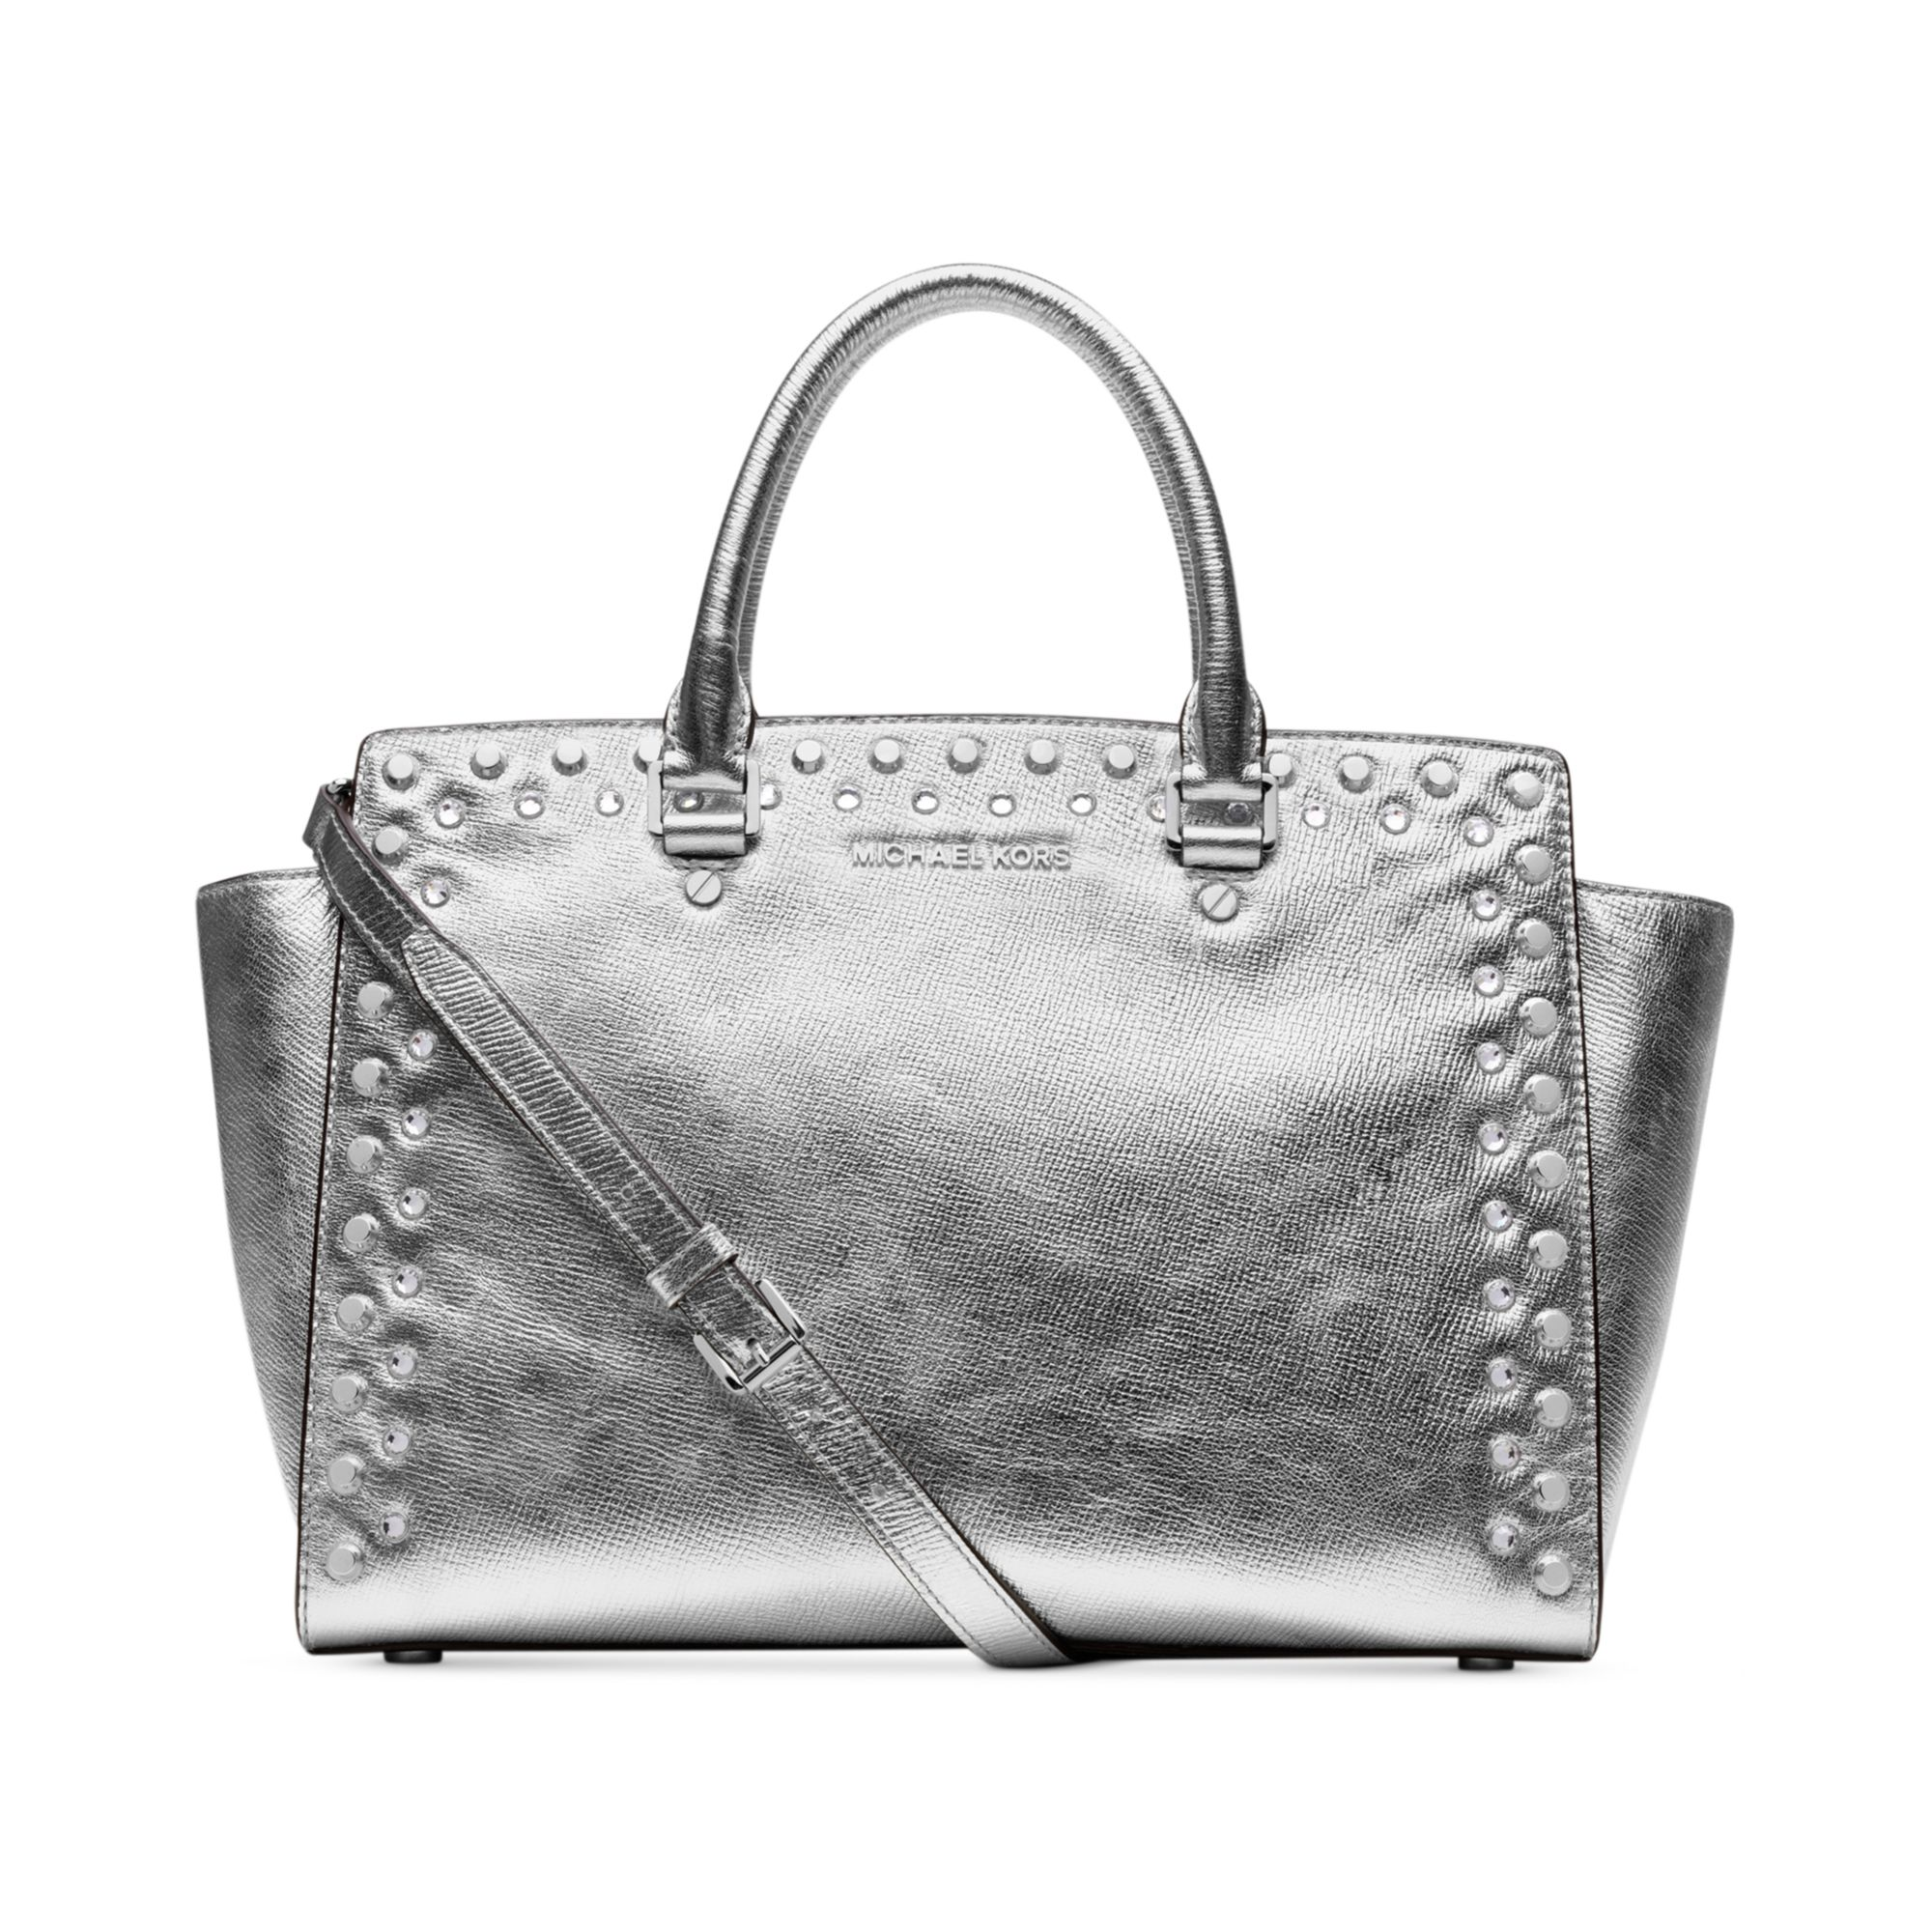 michael kors silber tasche michael kors bag is an easy choice for any fashion forward woman. Black Bedroom Furniture Sets. Home Design Ideas